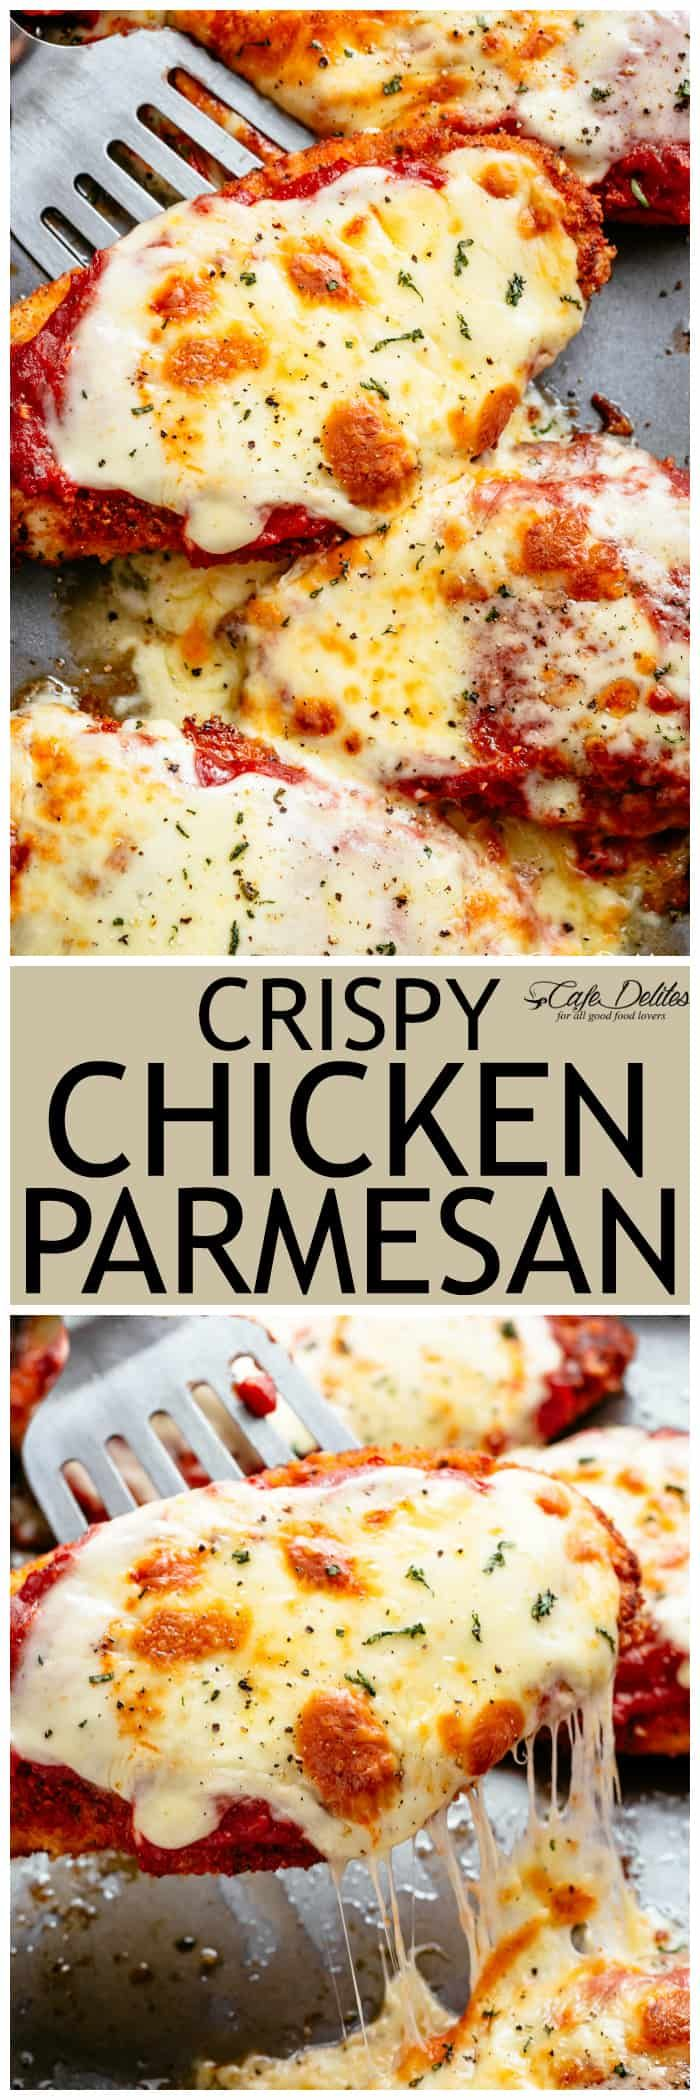 The Best Crispy Chicken Parmesan Easyrecipes Chicken Parmesan Cafedelites Chicken Parmesan Recipe Easy Chicken Parmesan Recipes Chicken Recipes